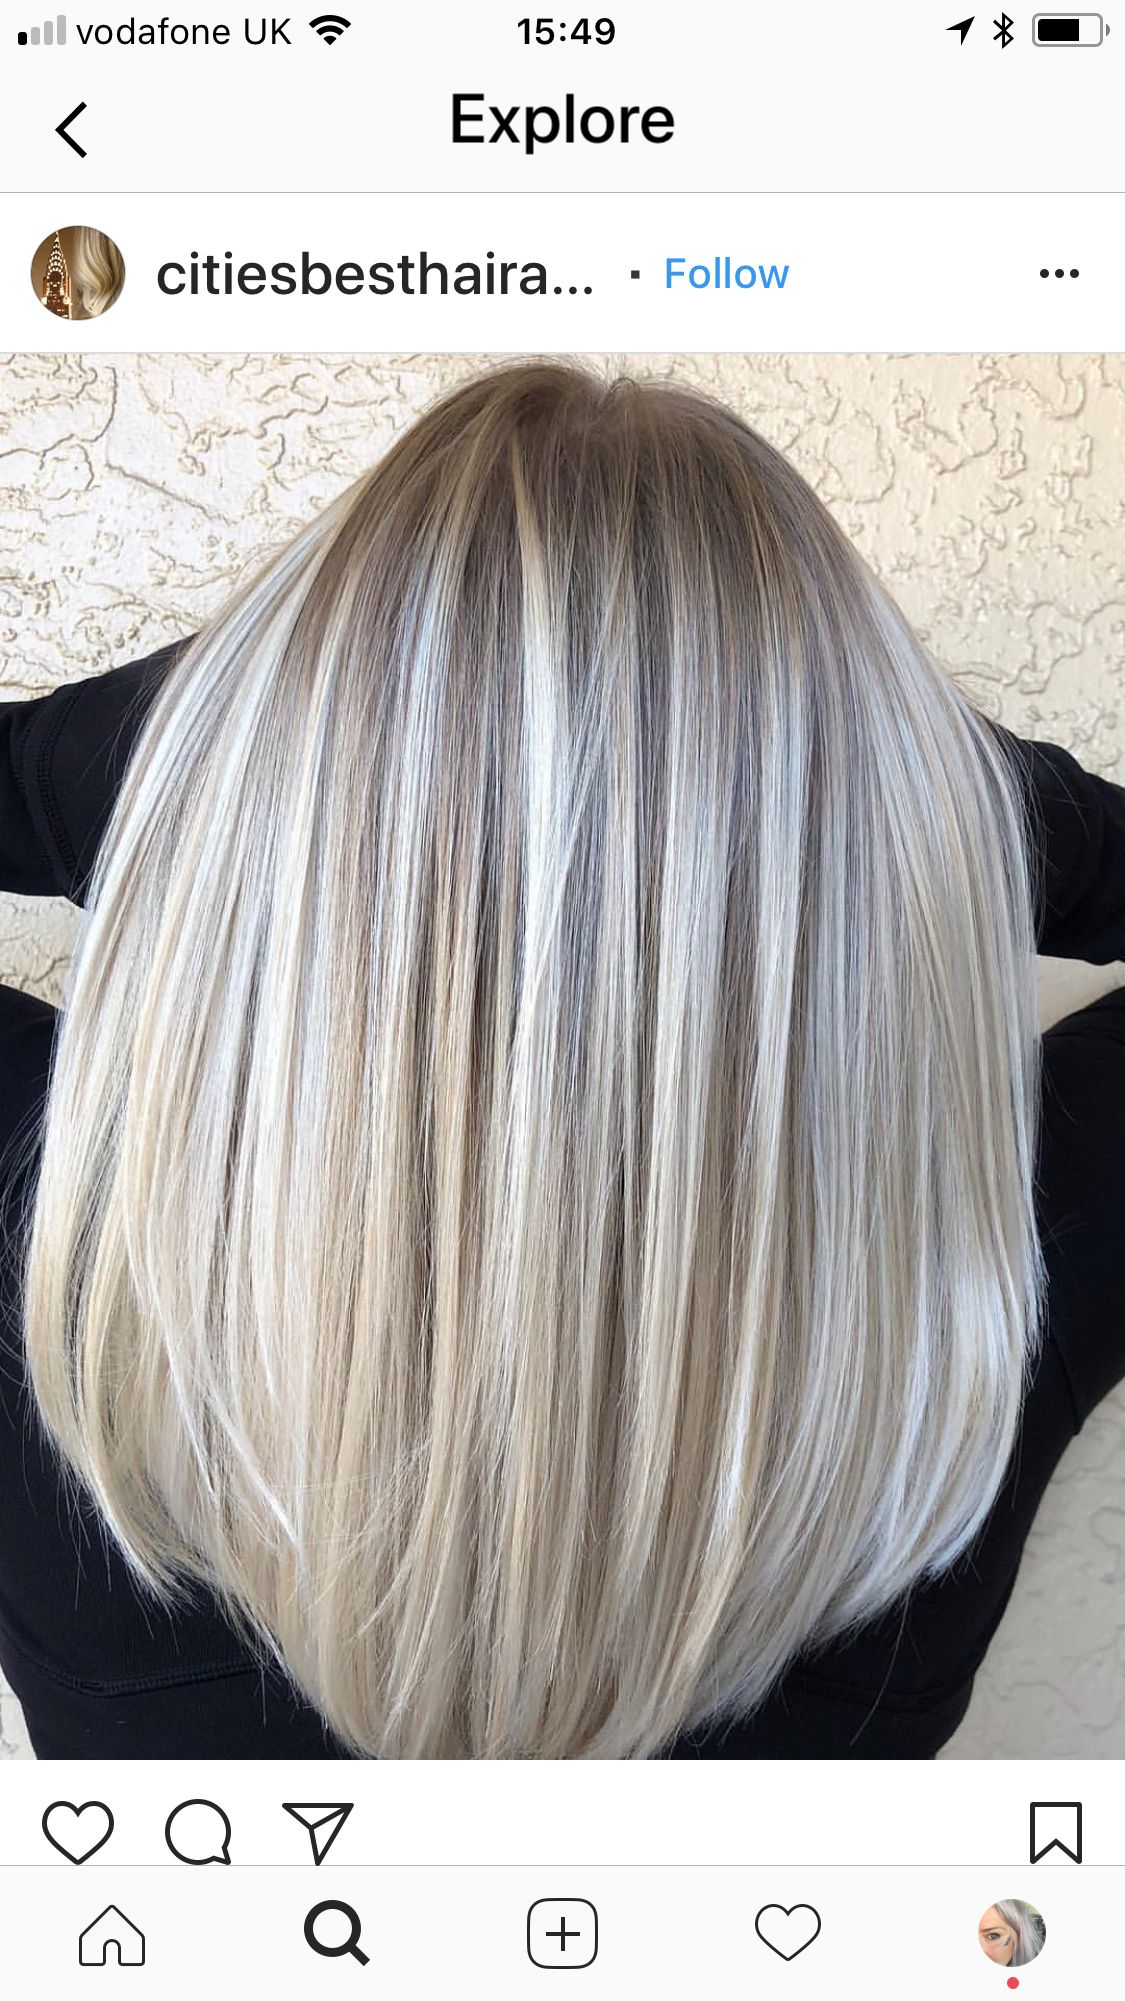 The perfect hair color in 2019 | Hair styles, Hair color ...